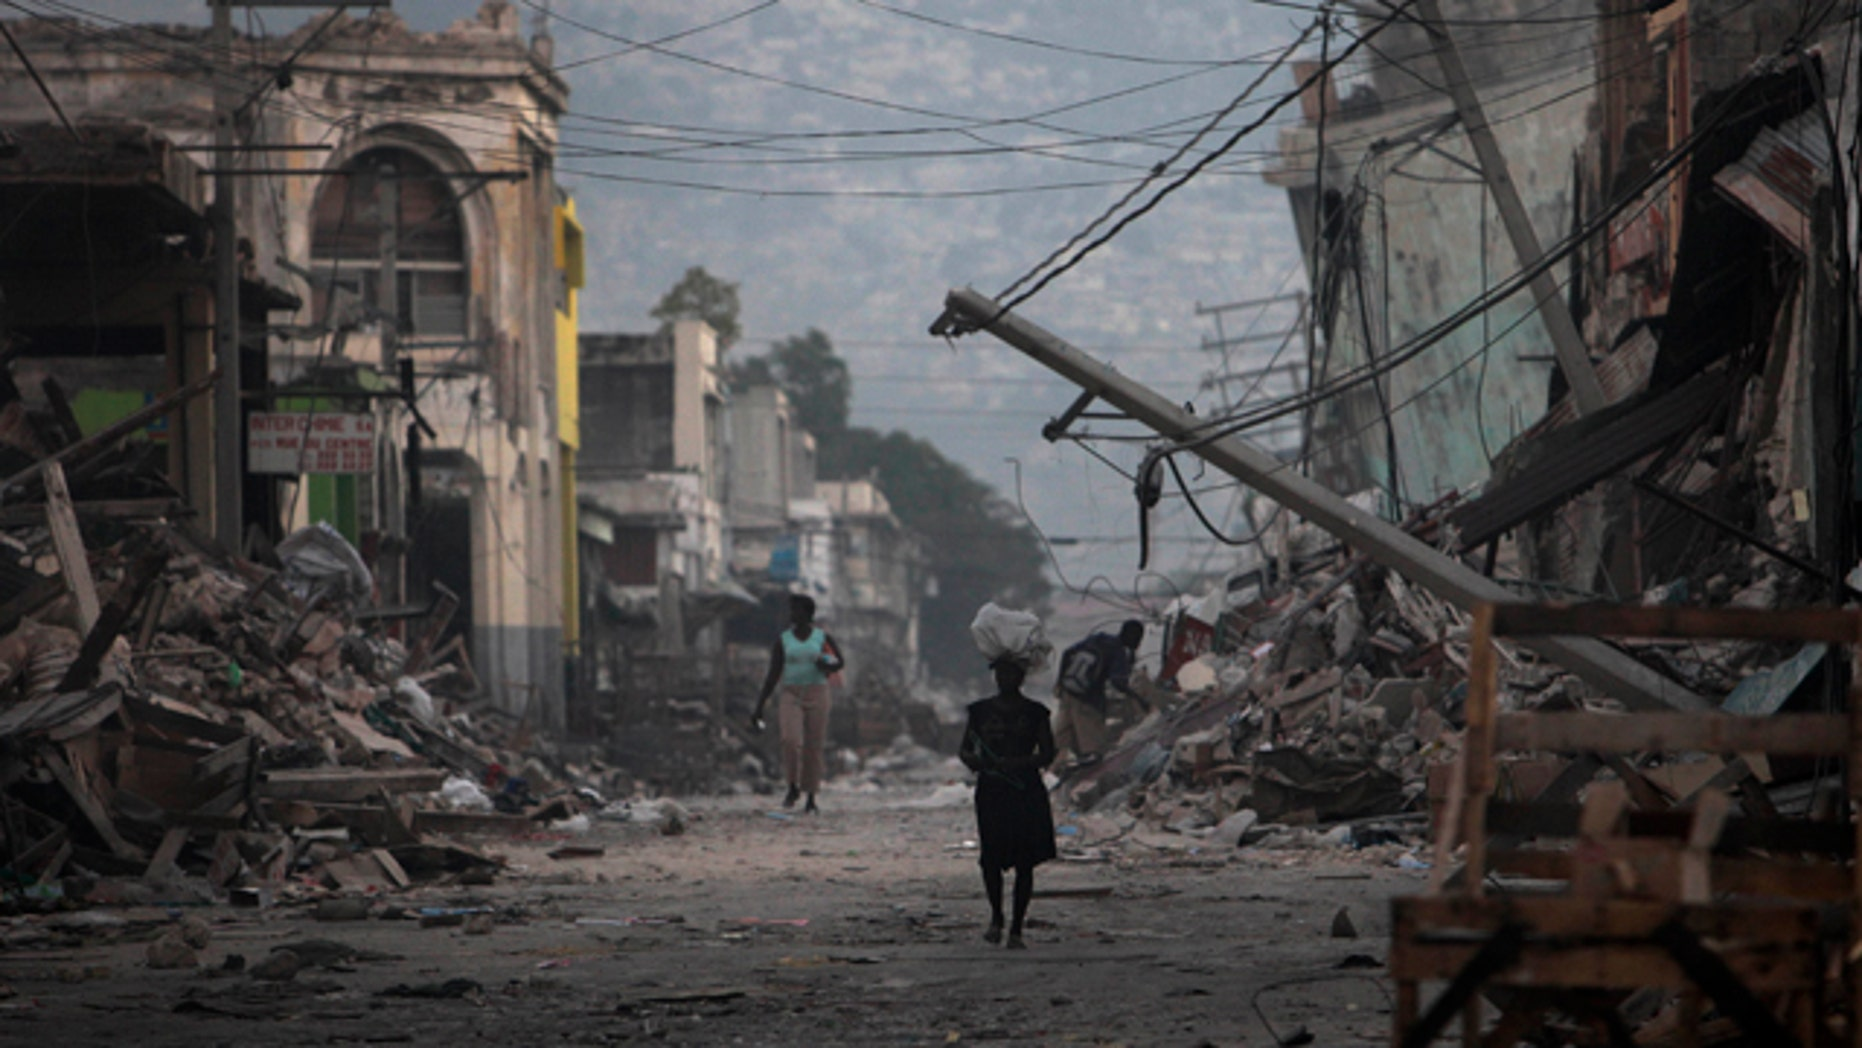 Jan. 20, 2010: A woman walks down a devastated street in Port-au-Prince, Haiti, a week after powerful 7.0-magnitude earthquake struck. Far fewer people died or were left homeless by last year's devastating earthquake than claimed by Haitian leaders, a report commissioned by the U.S. government has concluded.